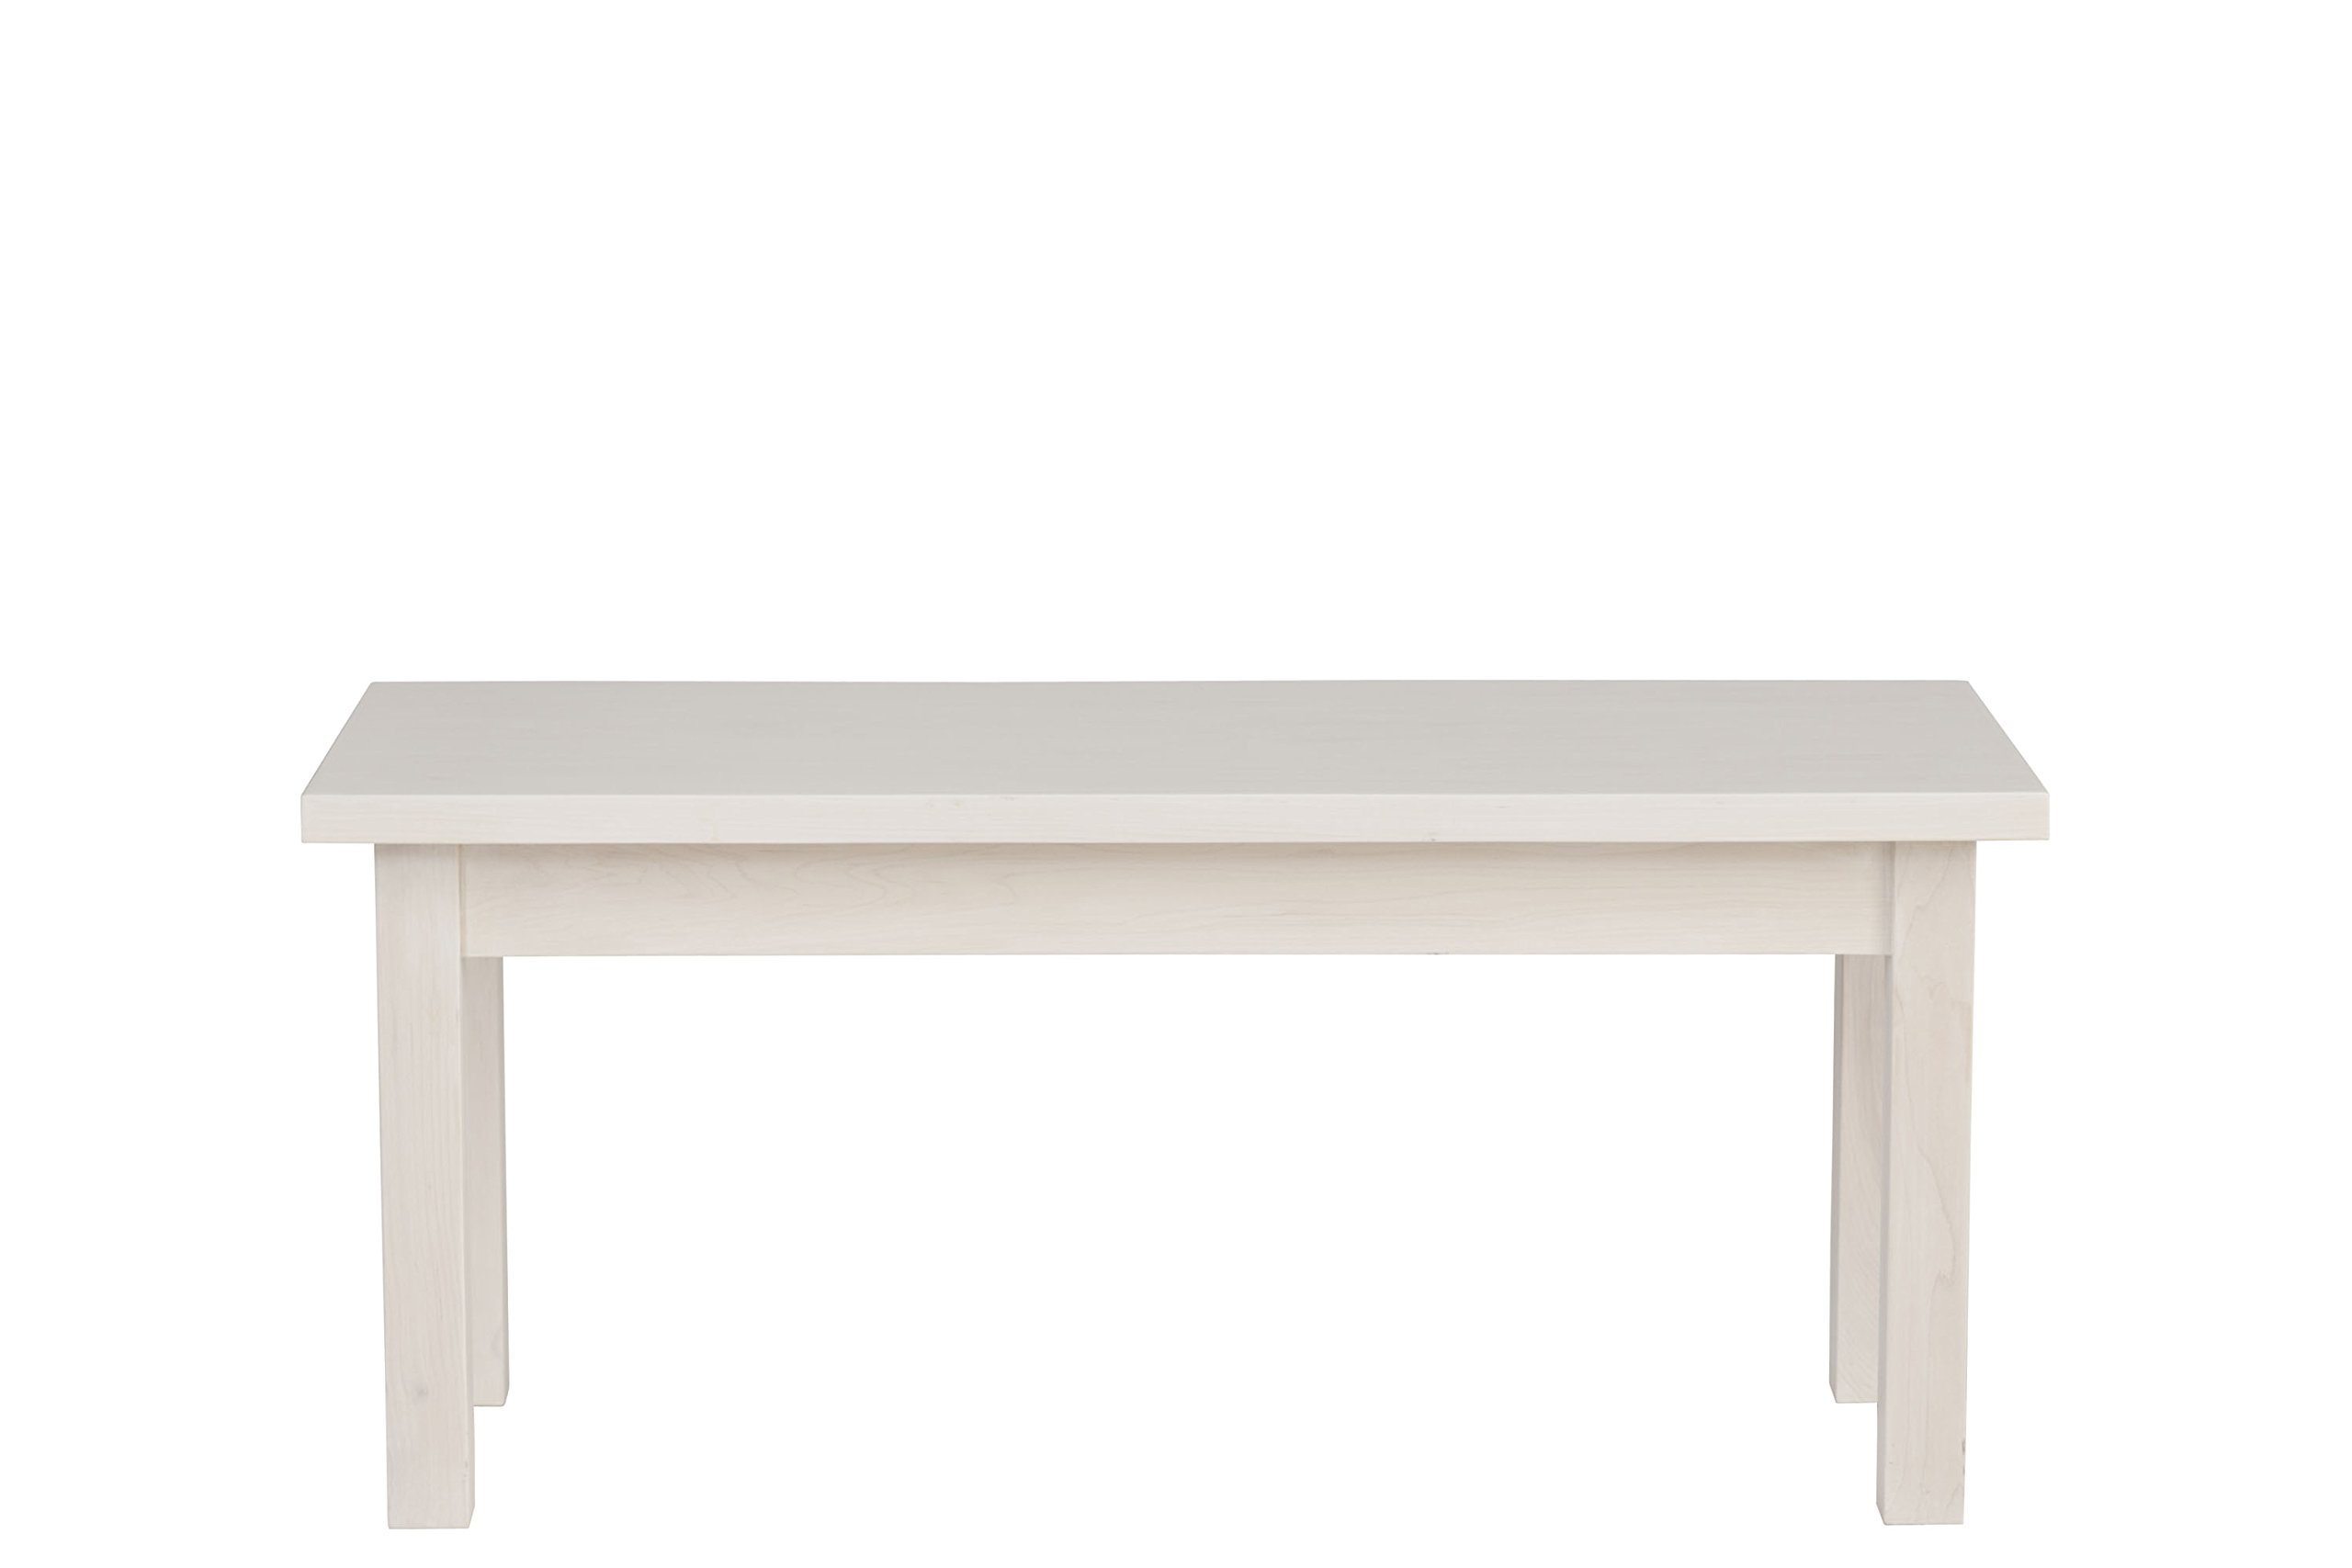 Urbangreen HUD21MCle Hudson Bench in Maple, Small, Clear